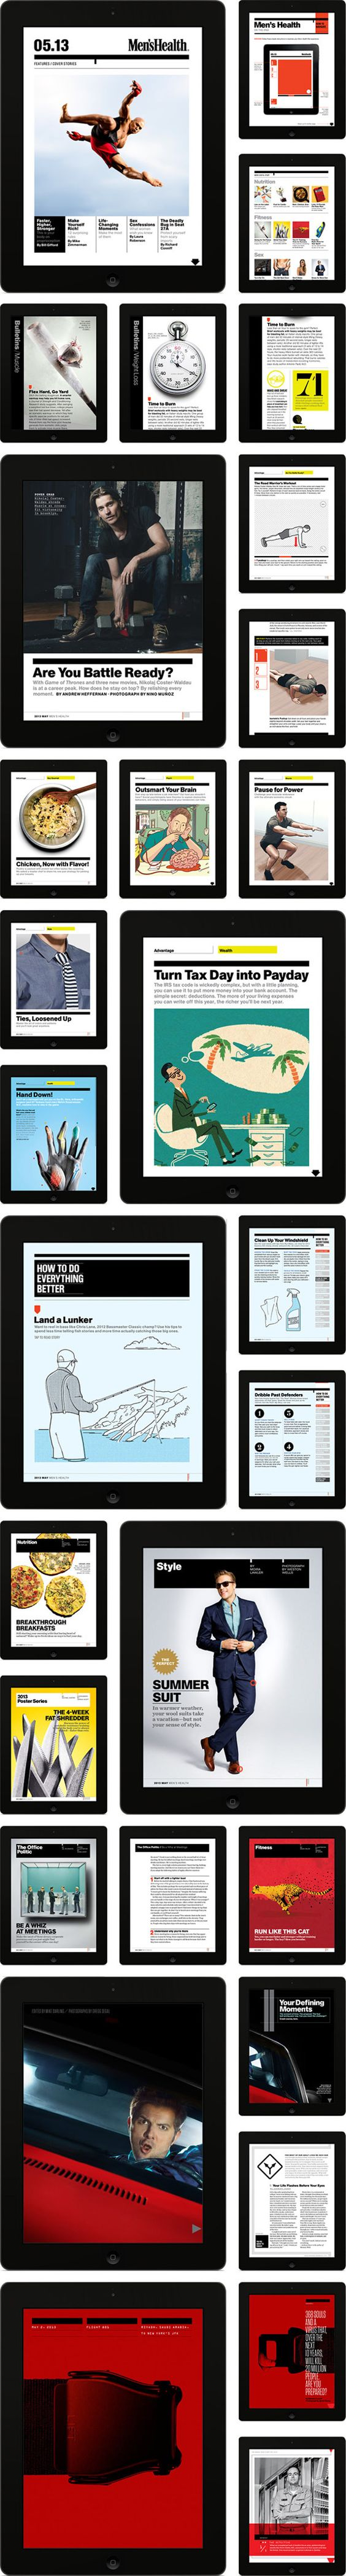 Men's Health iPad by Chris Carbo, via Behance. For more details visit http://mobilewebmds.com/mobile-apps/